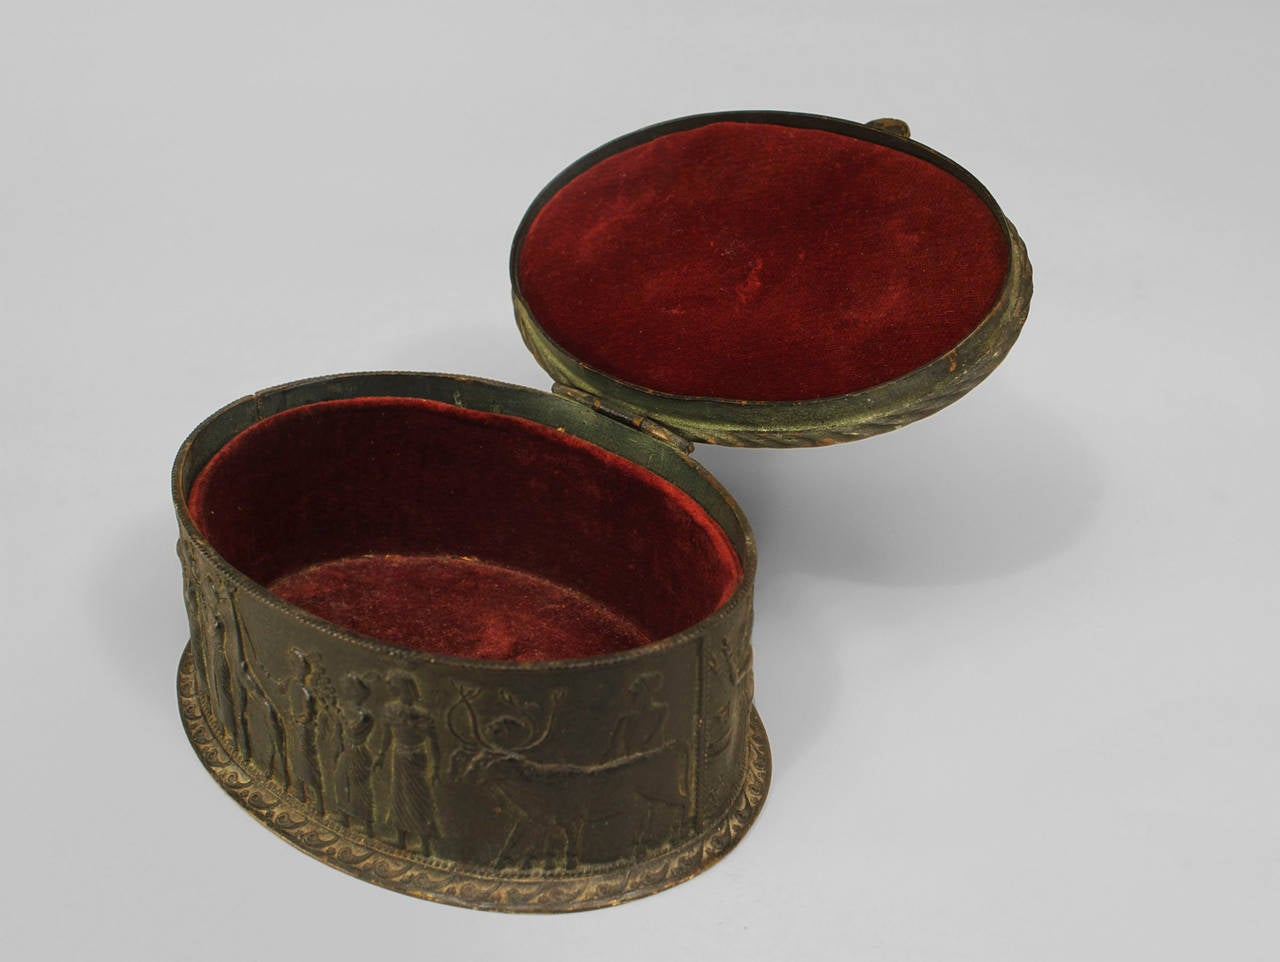 Egyptian Revival Style box of probable late 19th century French origin. The oval box is cast from dark bronze and decorated with classical figures in relief in addition to a scarab and 2 stones at the top.